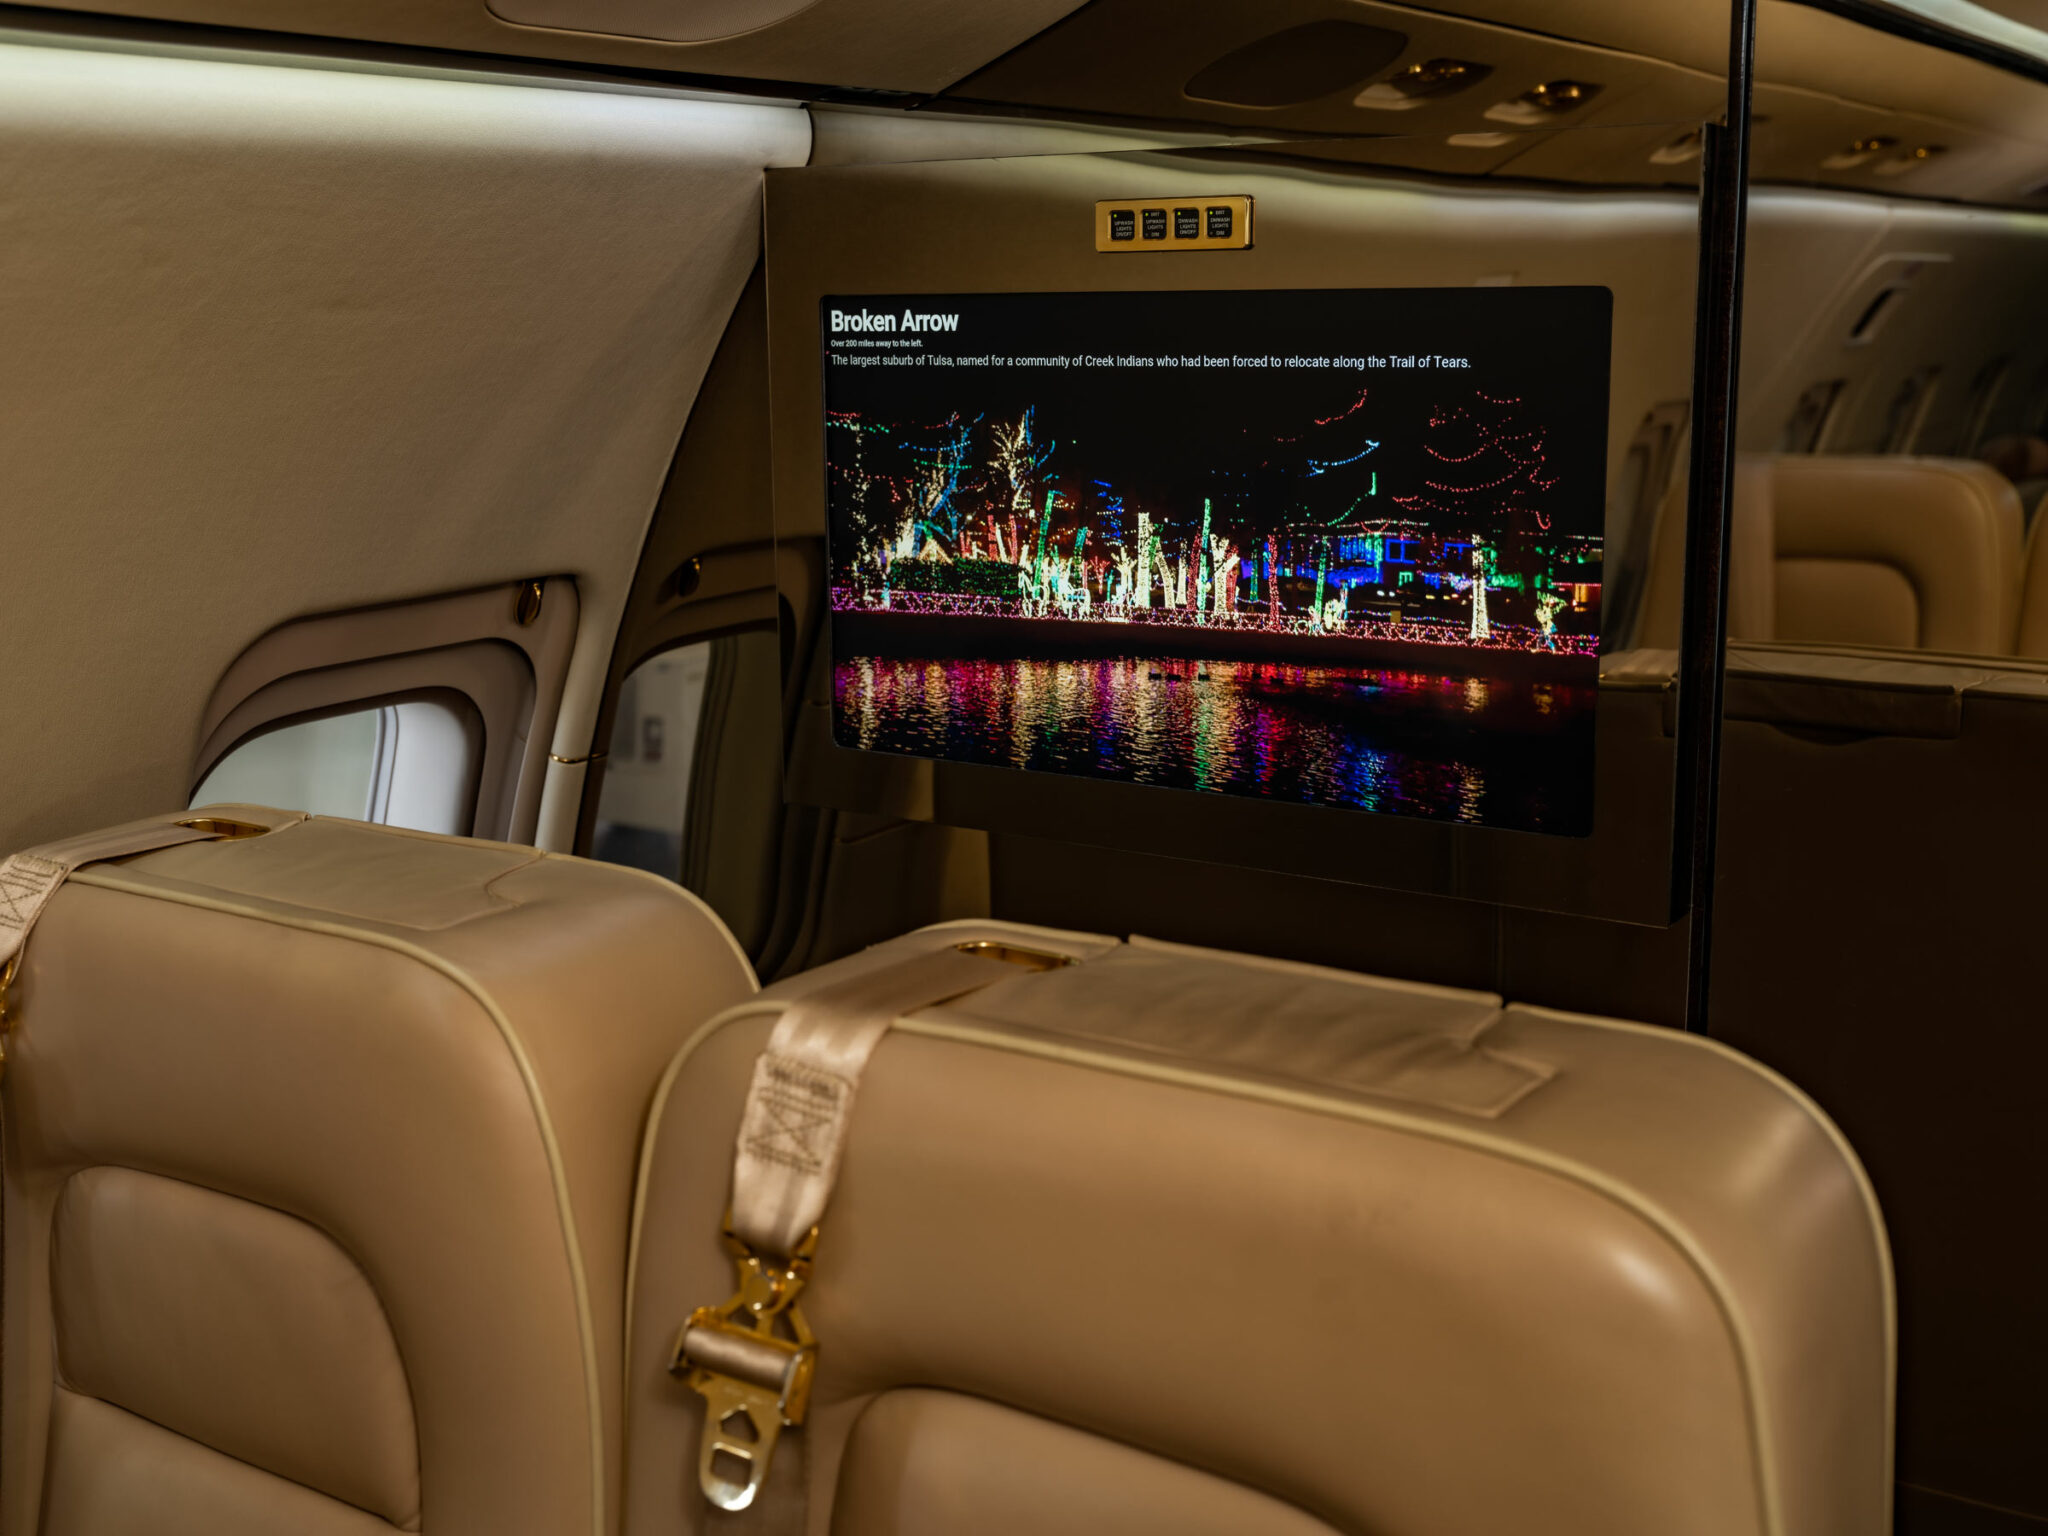 Goji Geotainment system from Gotham Studios on a Bombardier Challenger 850